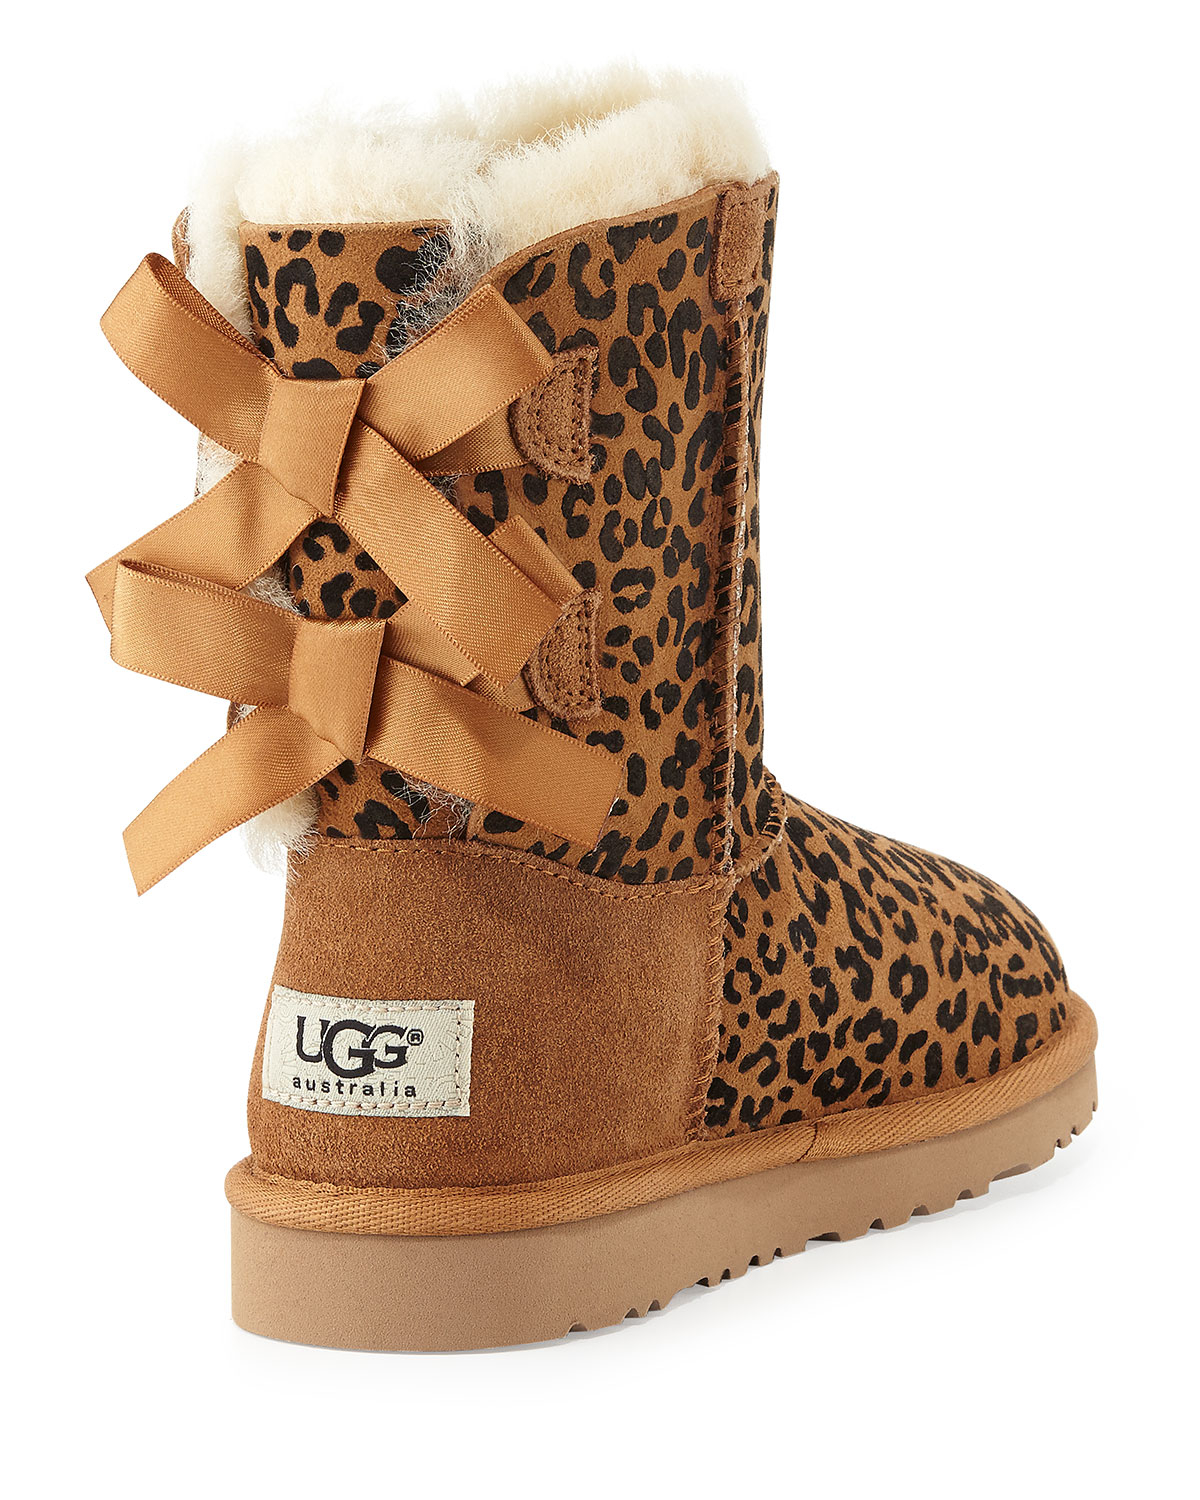 Find leopard print boots at ShopStyle. Shop the latest collection of leopard print boots from the most popular stores - all in one place.